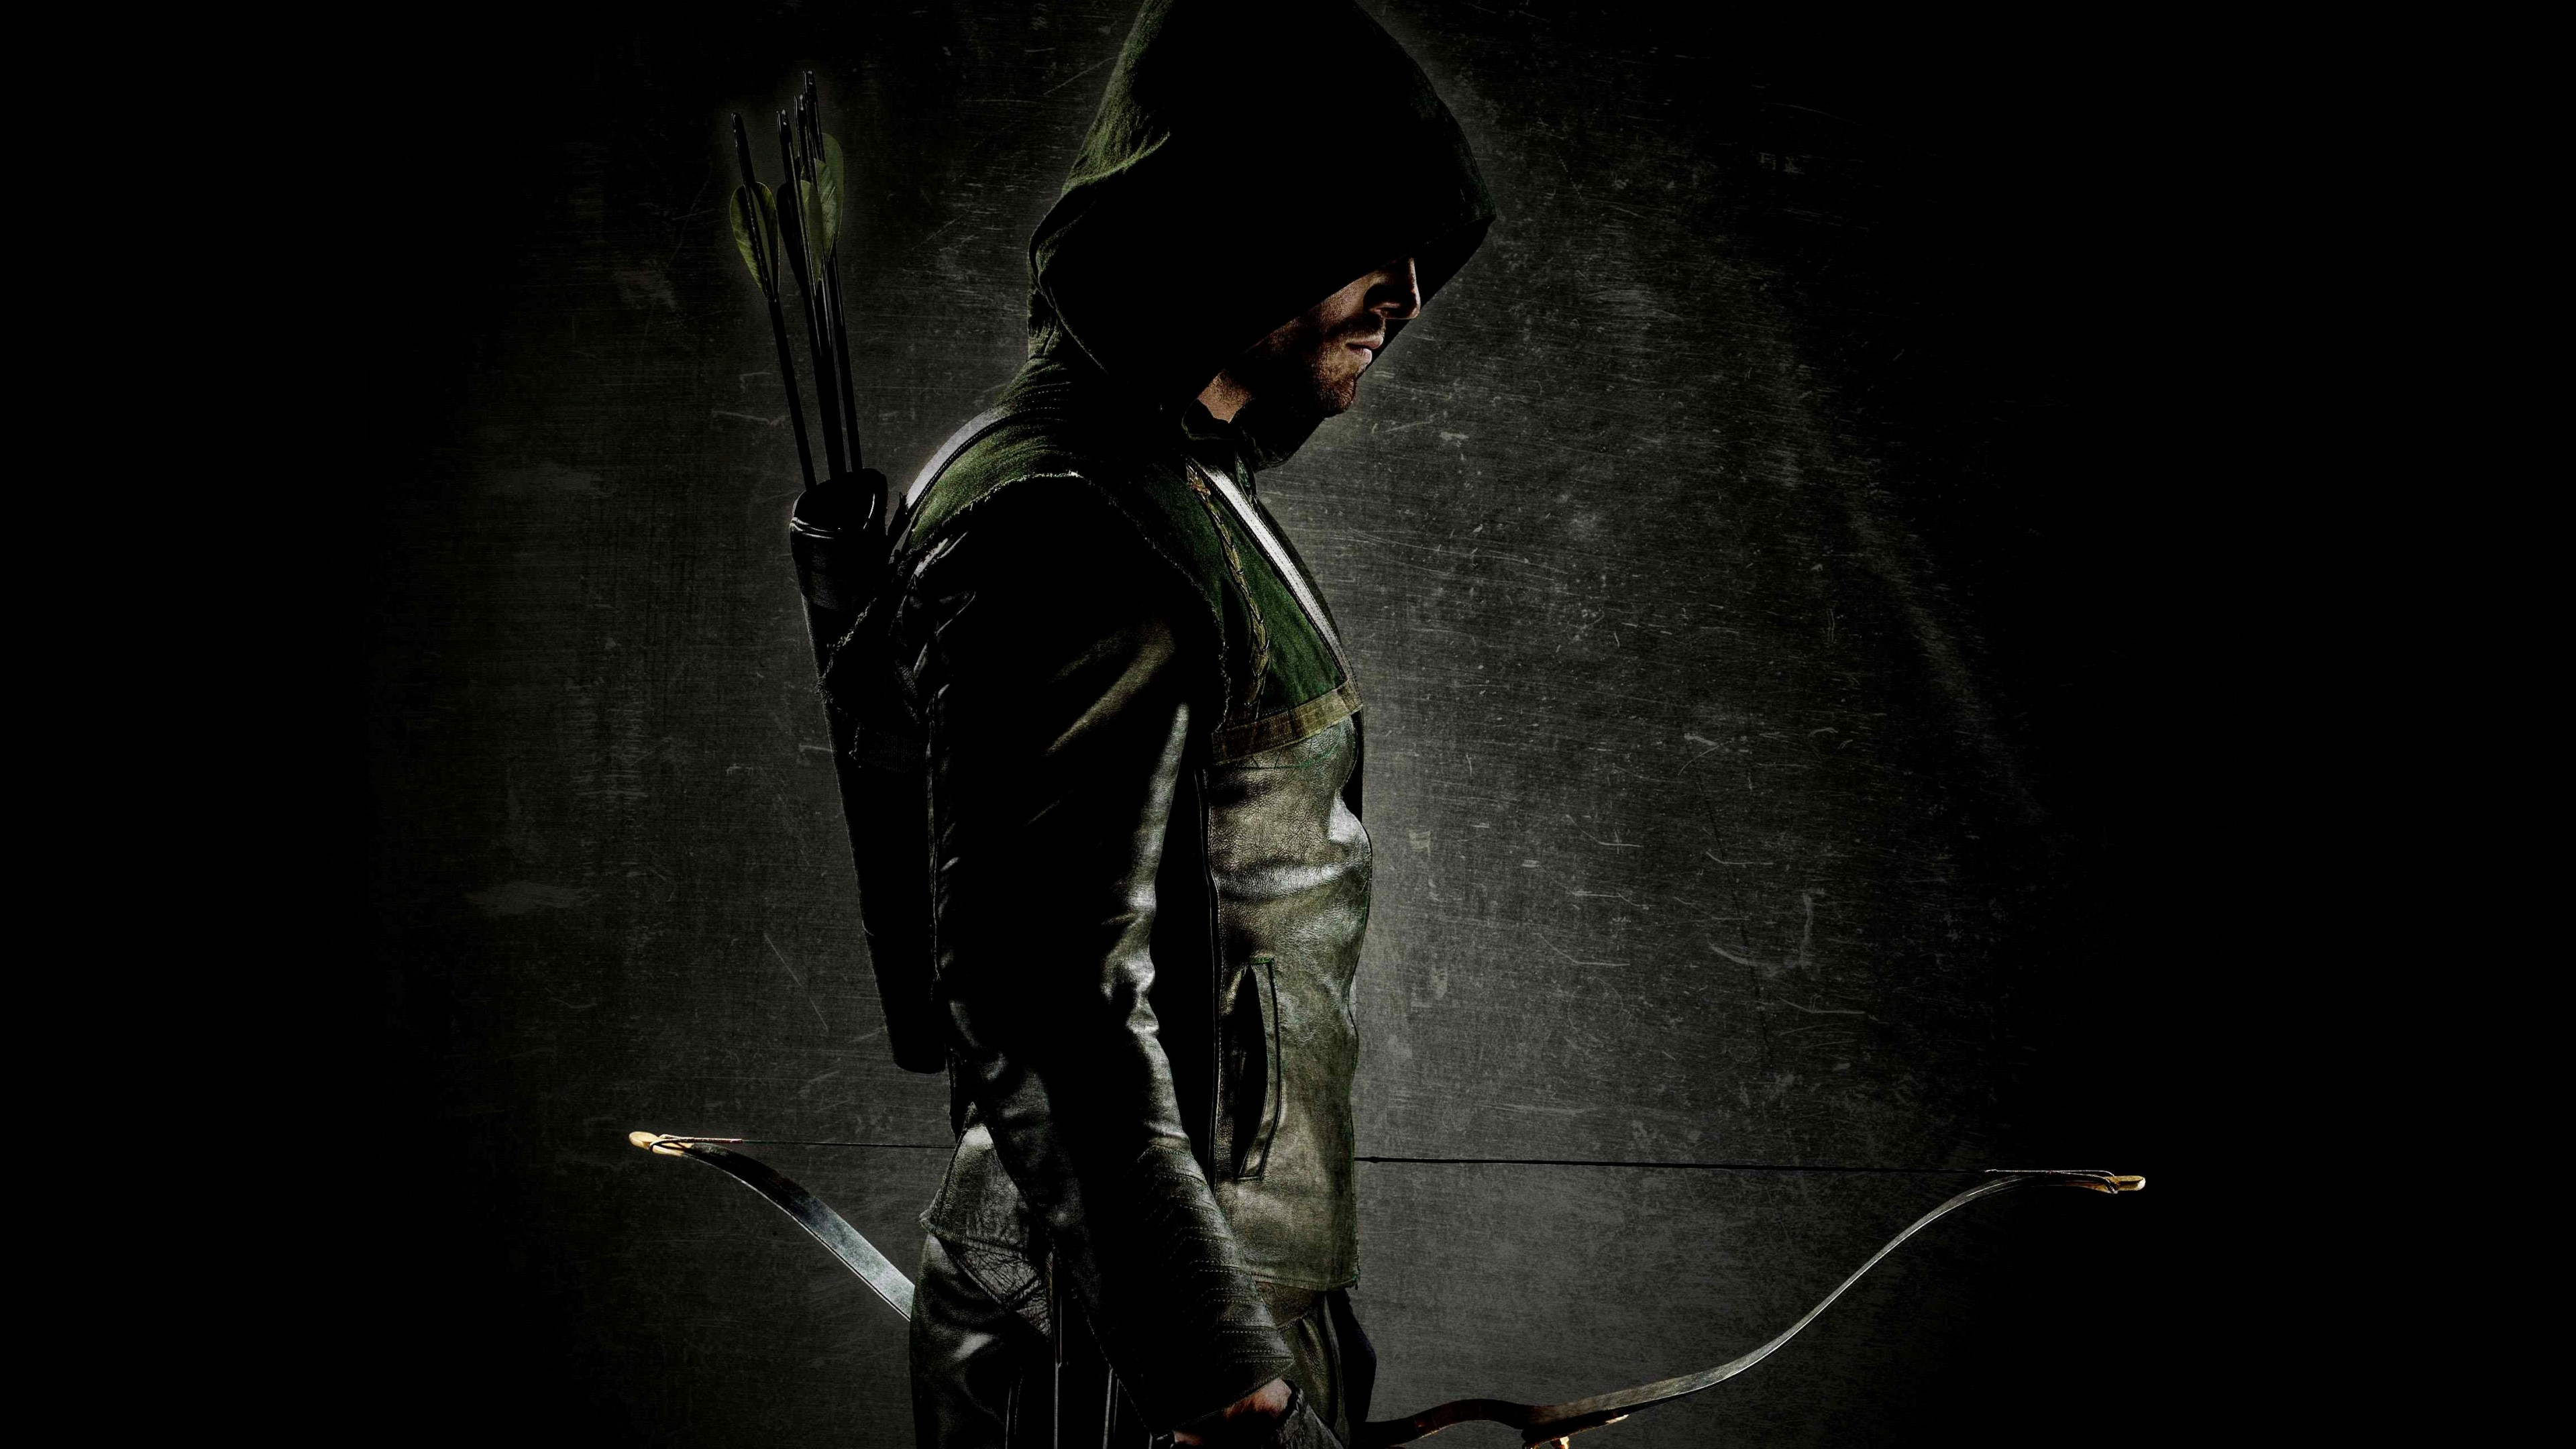 Arrow tv series 2 hd tv shows 4k wallpapers images - Tv series wallpaper 4k ...